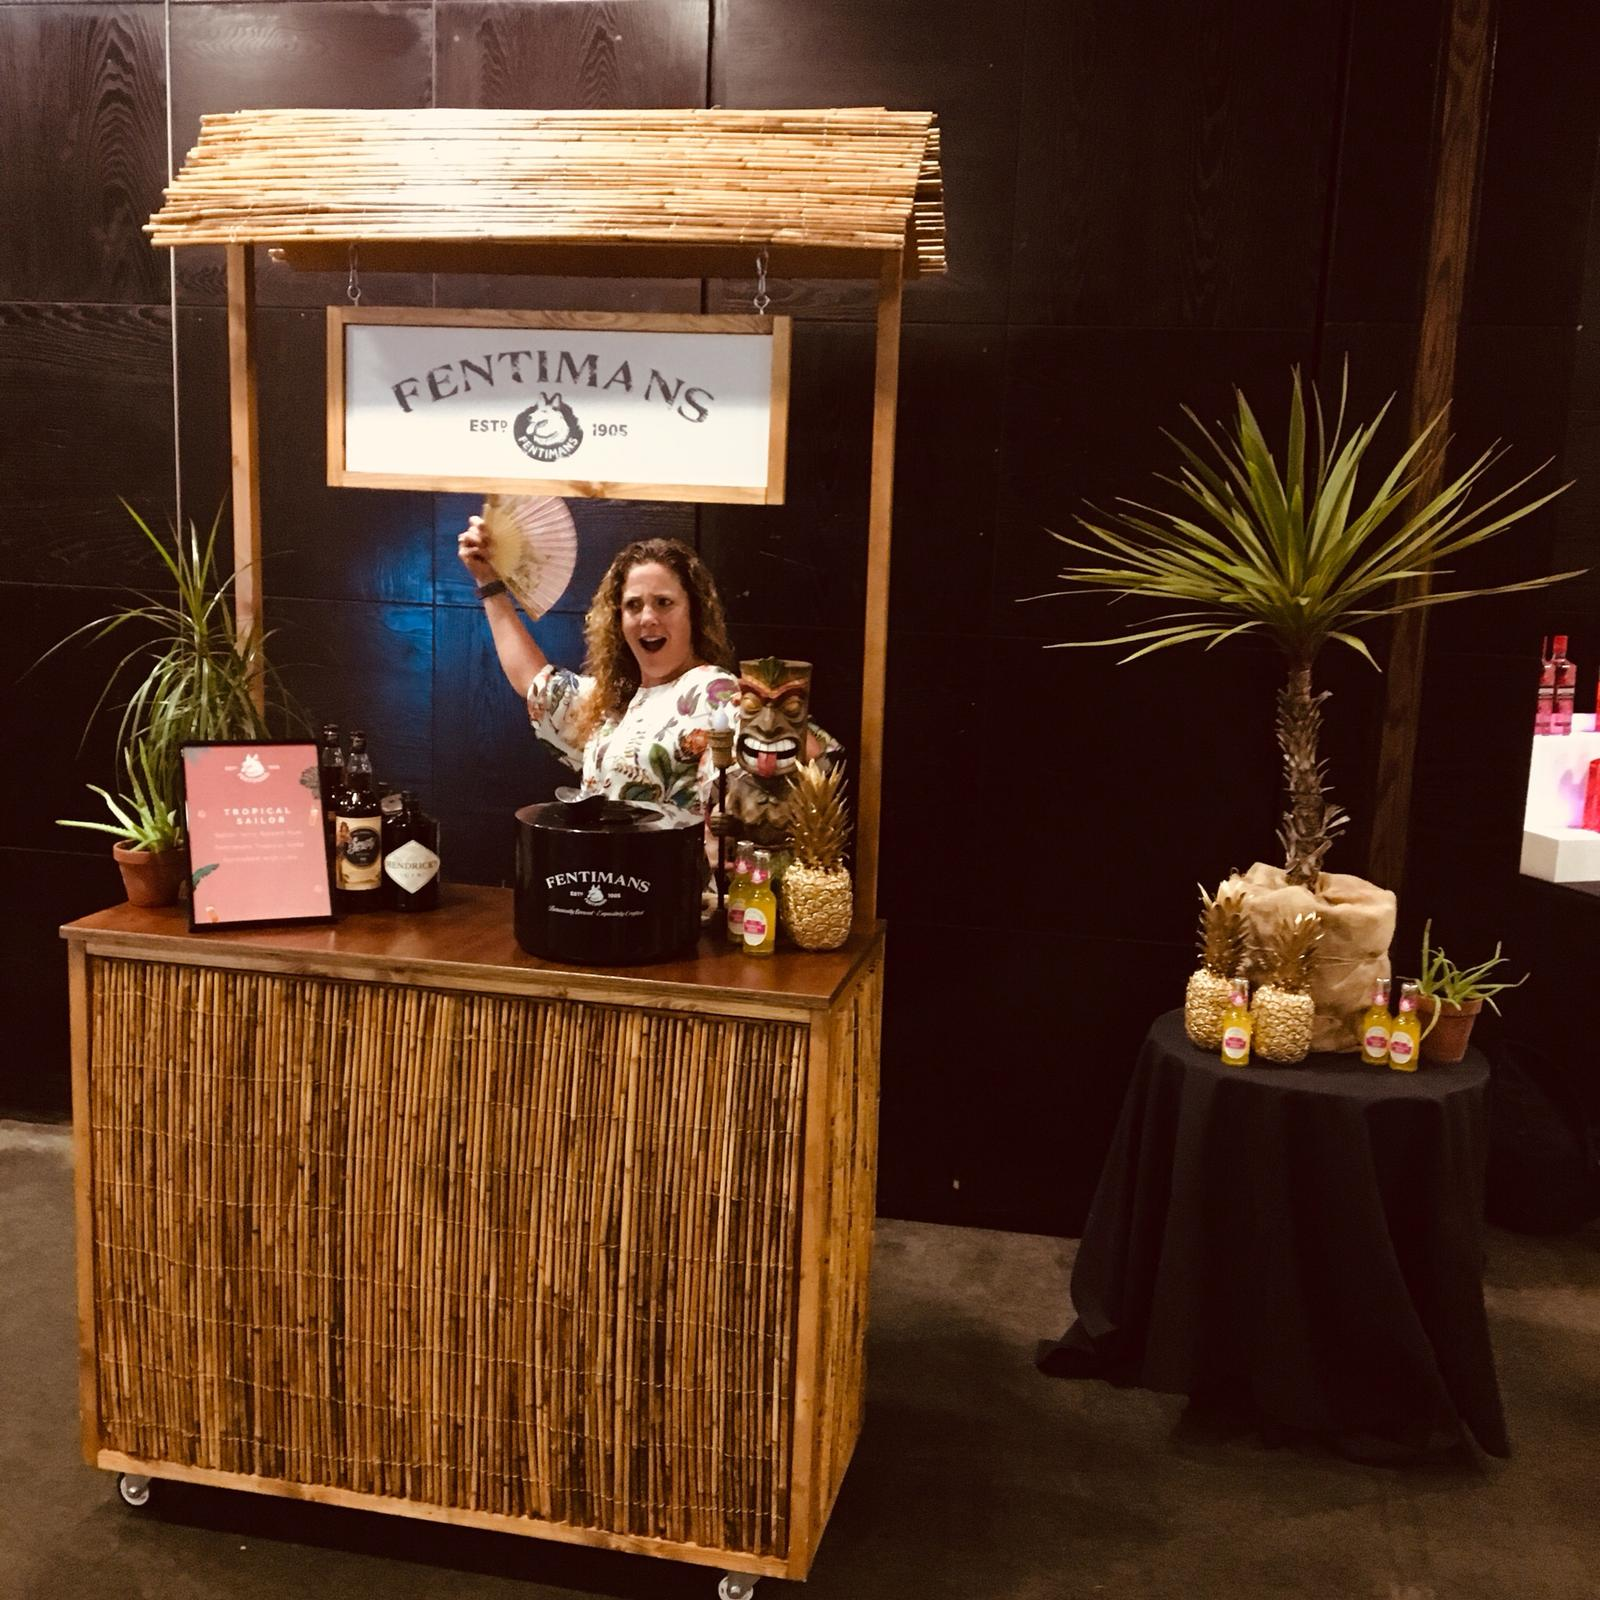 Quirky Group Small Tiki bar for hire at a Fentimans event